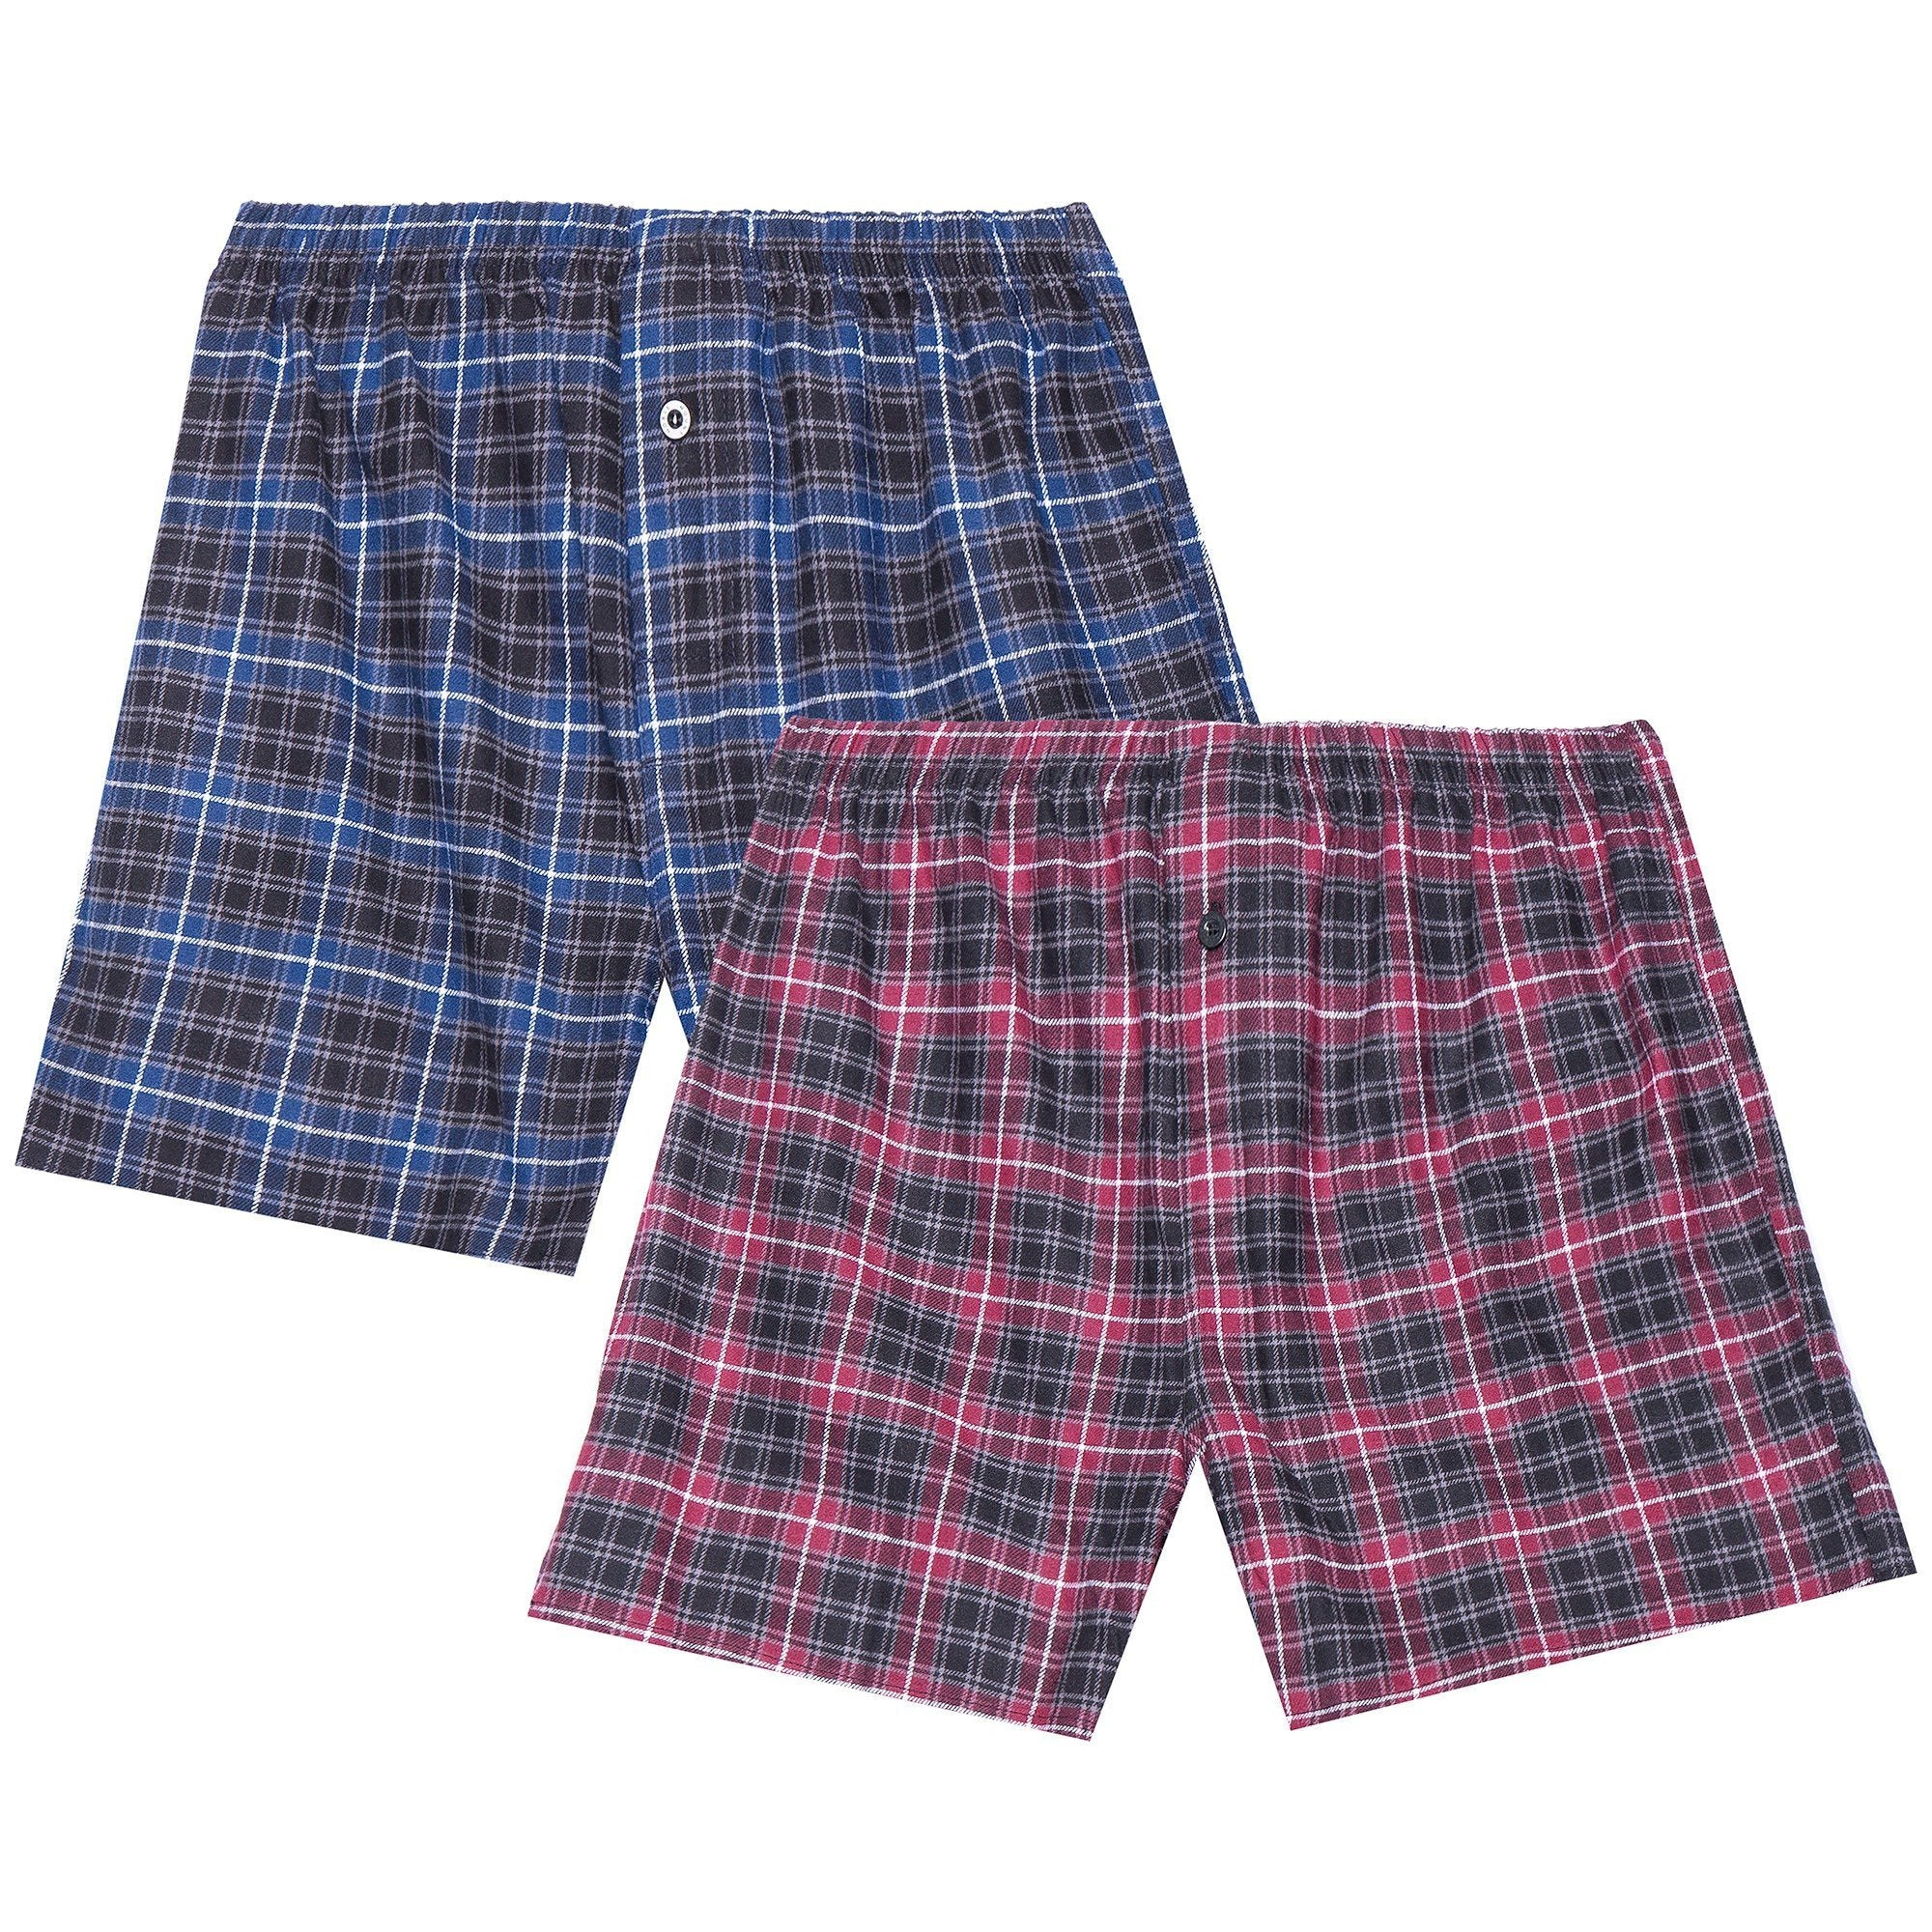 Men's 100% Cotton Flannel Boxers - 2 Pack - Plaid Burgundy-Grey/Navy-Black